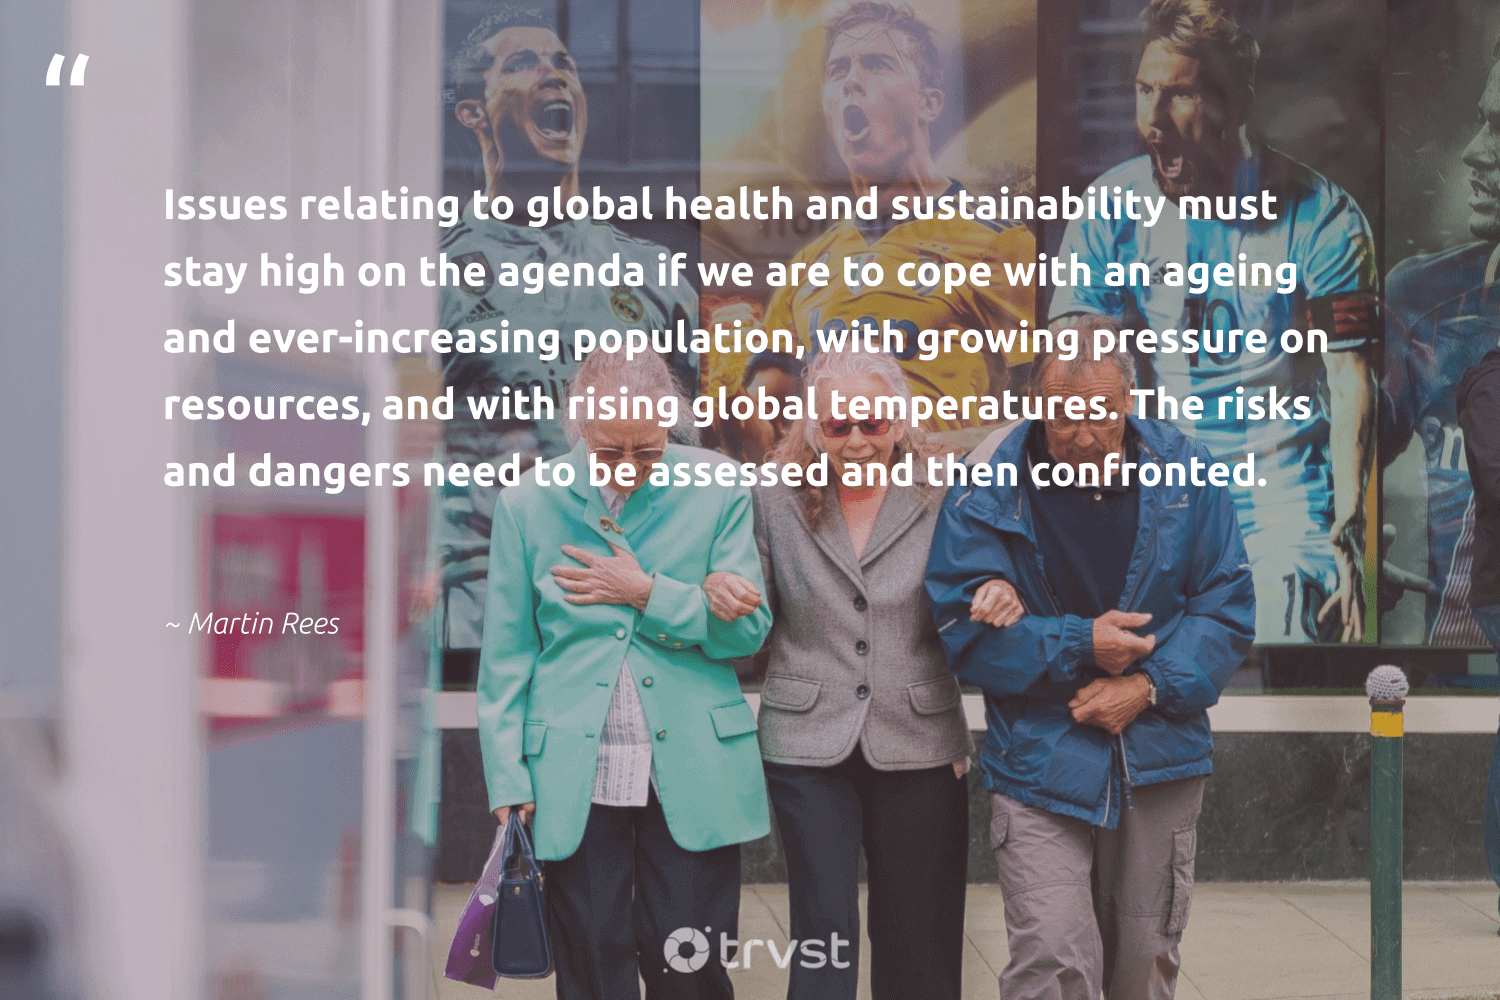 """""""Issues relating to global health and sustainability must stay high on the agenda if we are to cope with an ageing and ever-increasing population, with growing pressure on resources, and with rising global temperatures. The risks and dangers need to be assessed and then confronted.""""  - Martin Rees #trvst #quotes #sustainability #health #sustainableliving #fashion #green #dotherightthing #sustainable #bethechange #greenliving #dosomething"""